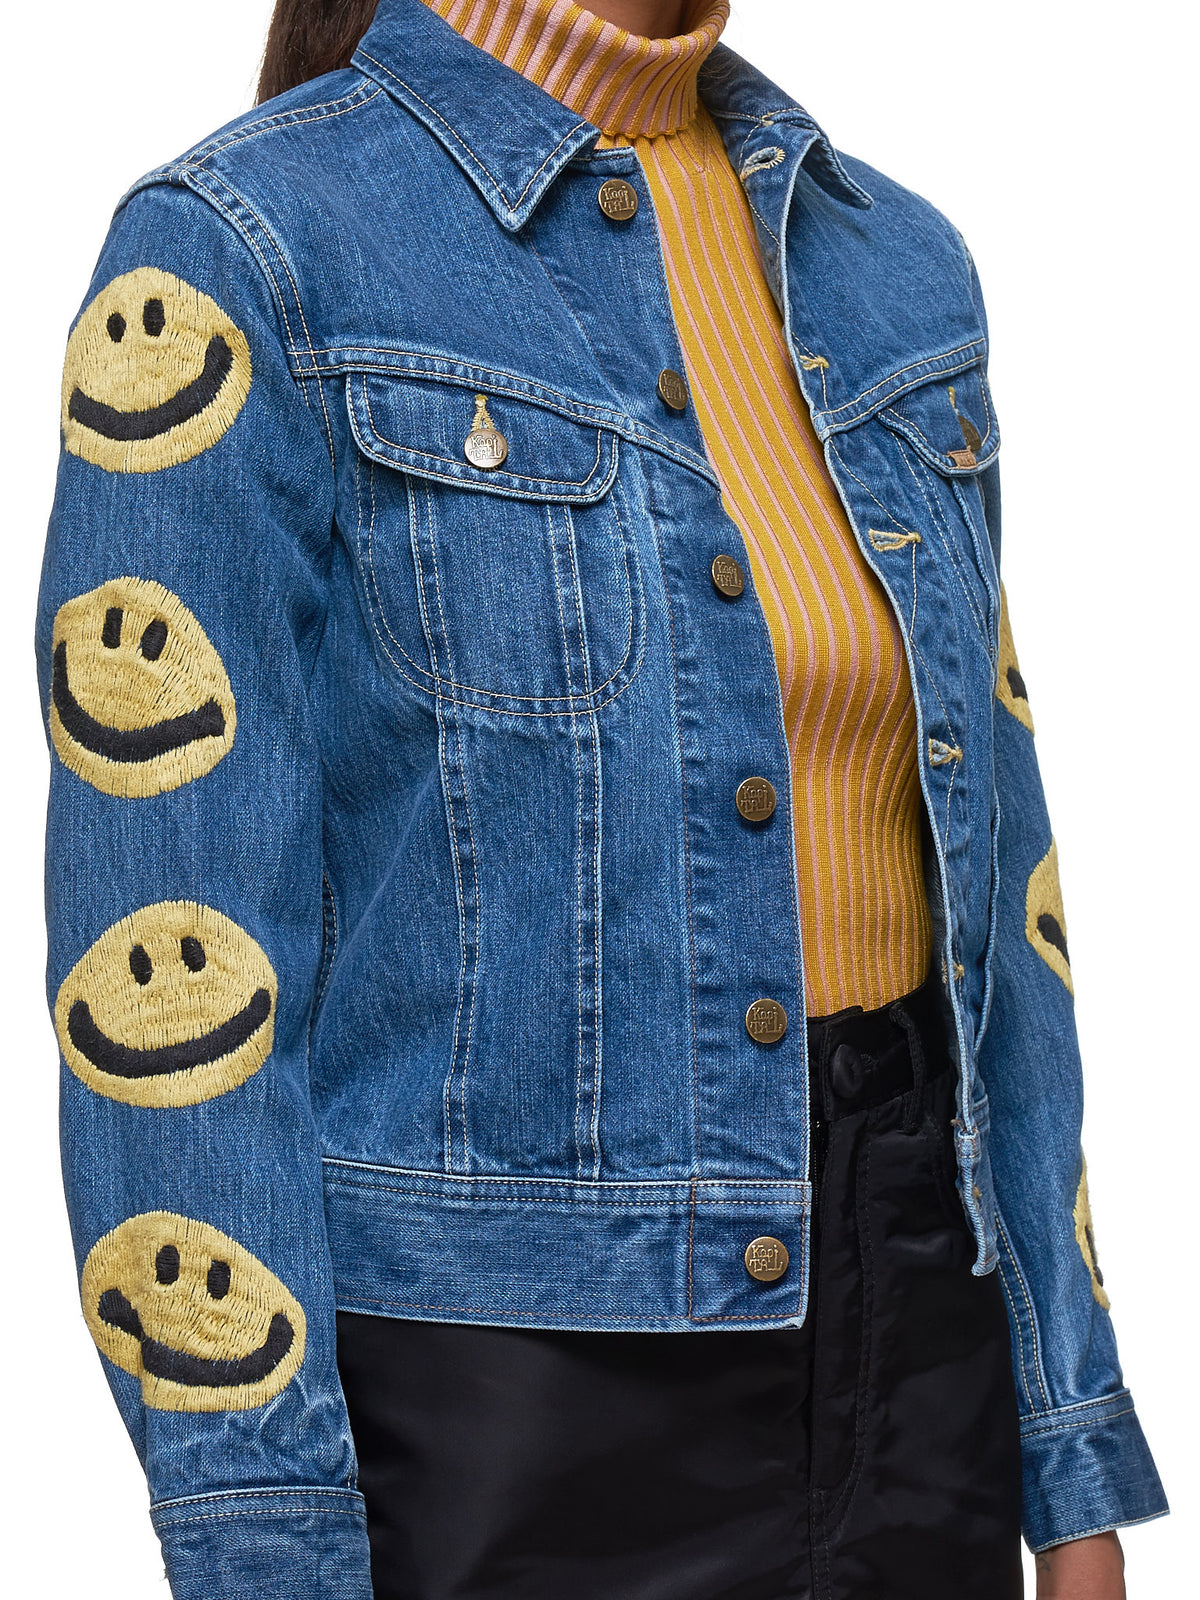 Denim Jacket (K1911LJ825-BLUE-YELLOW)